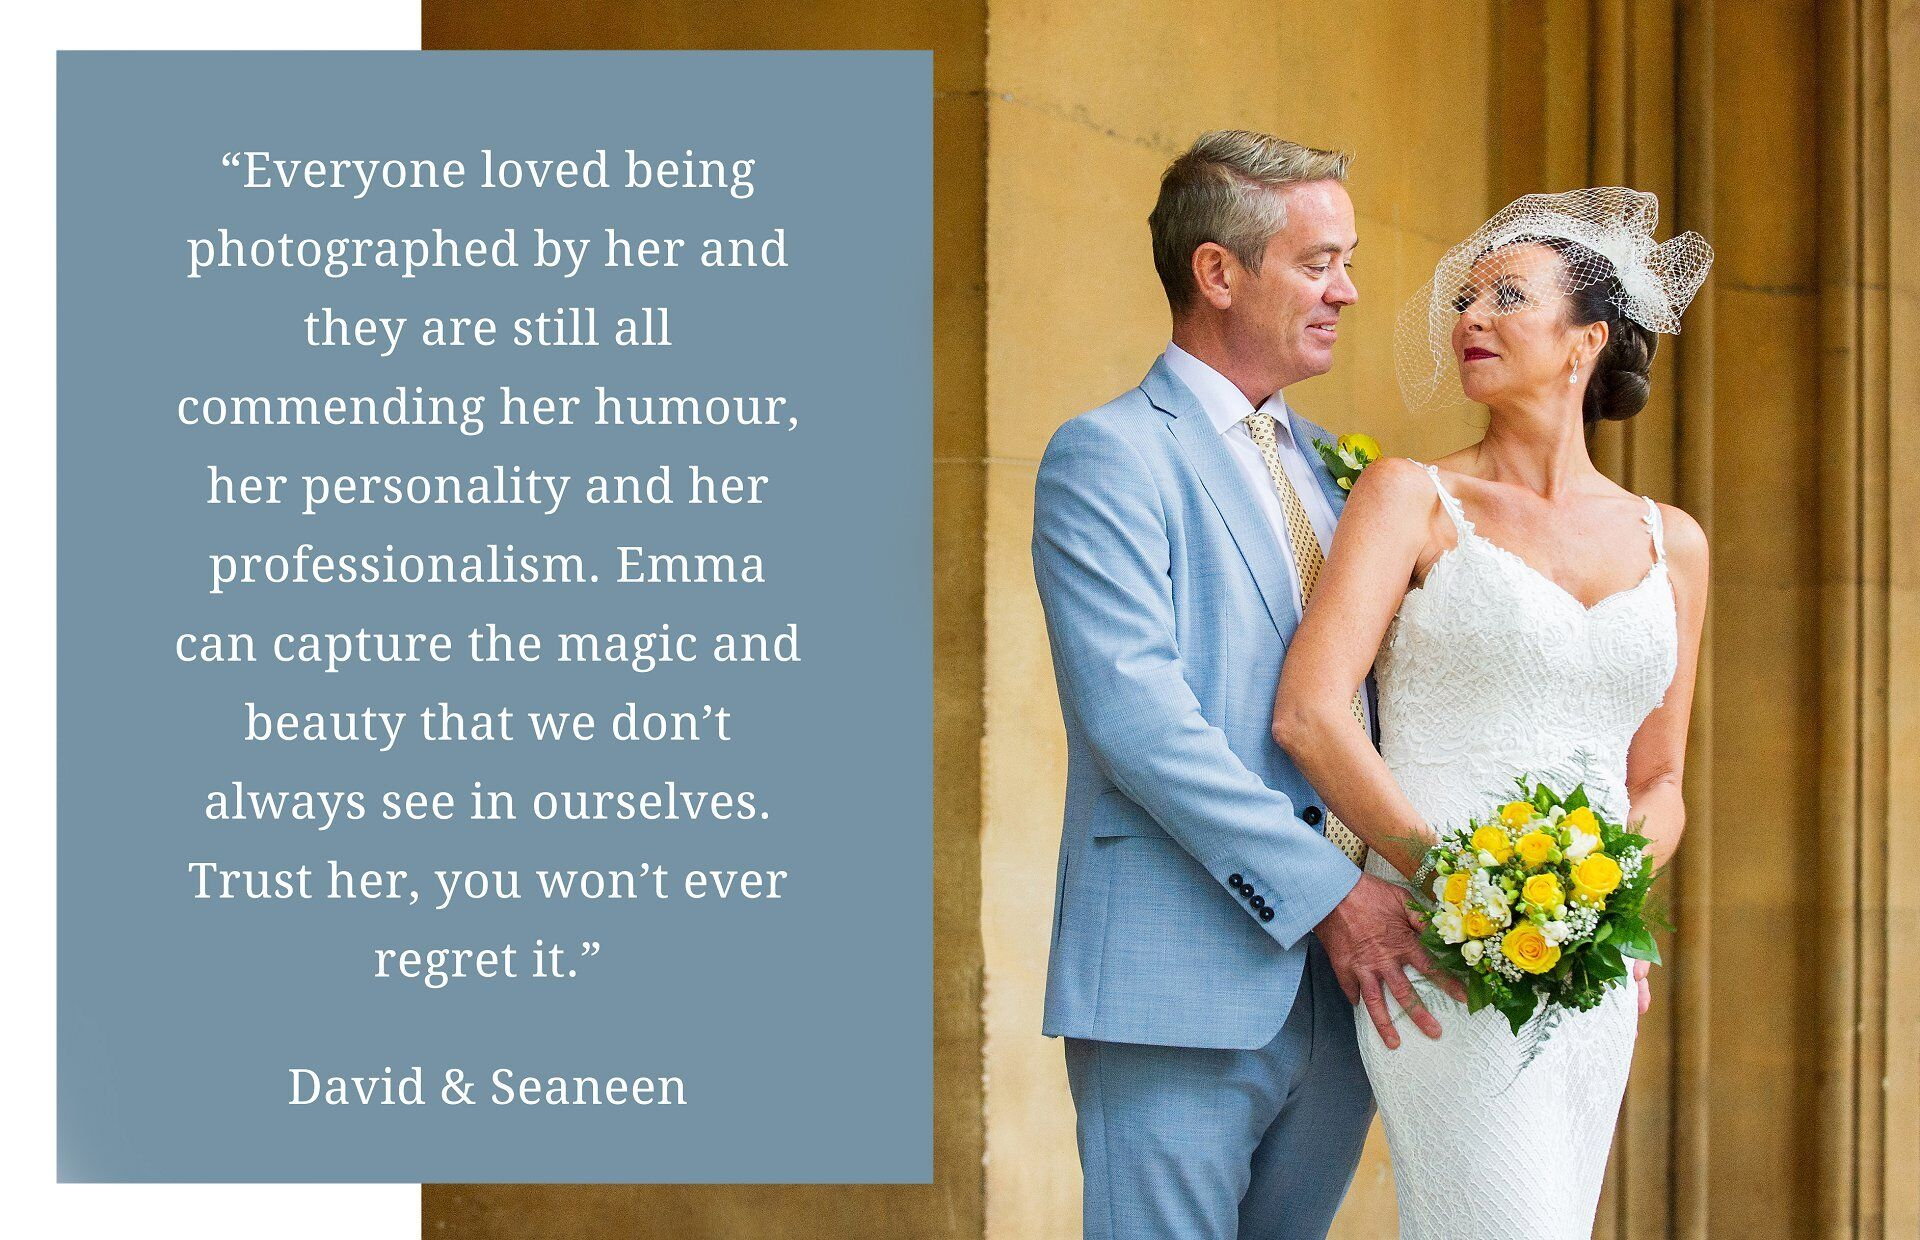 ivy chelsea garden wedding photographer a client testimonial for emma duggan photography